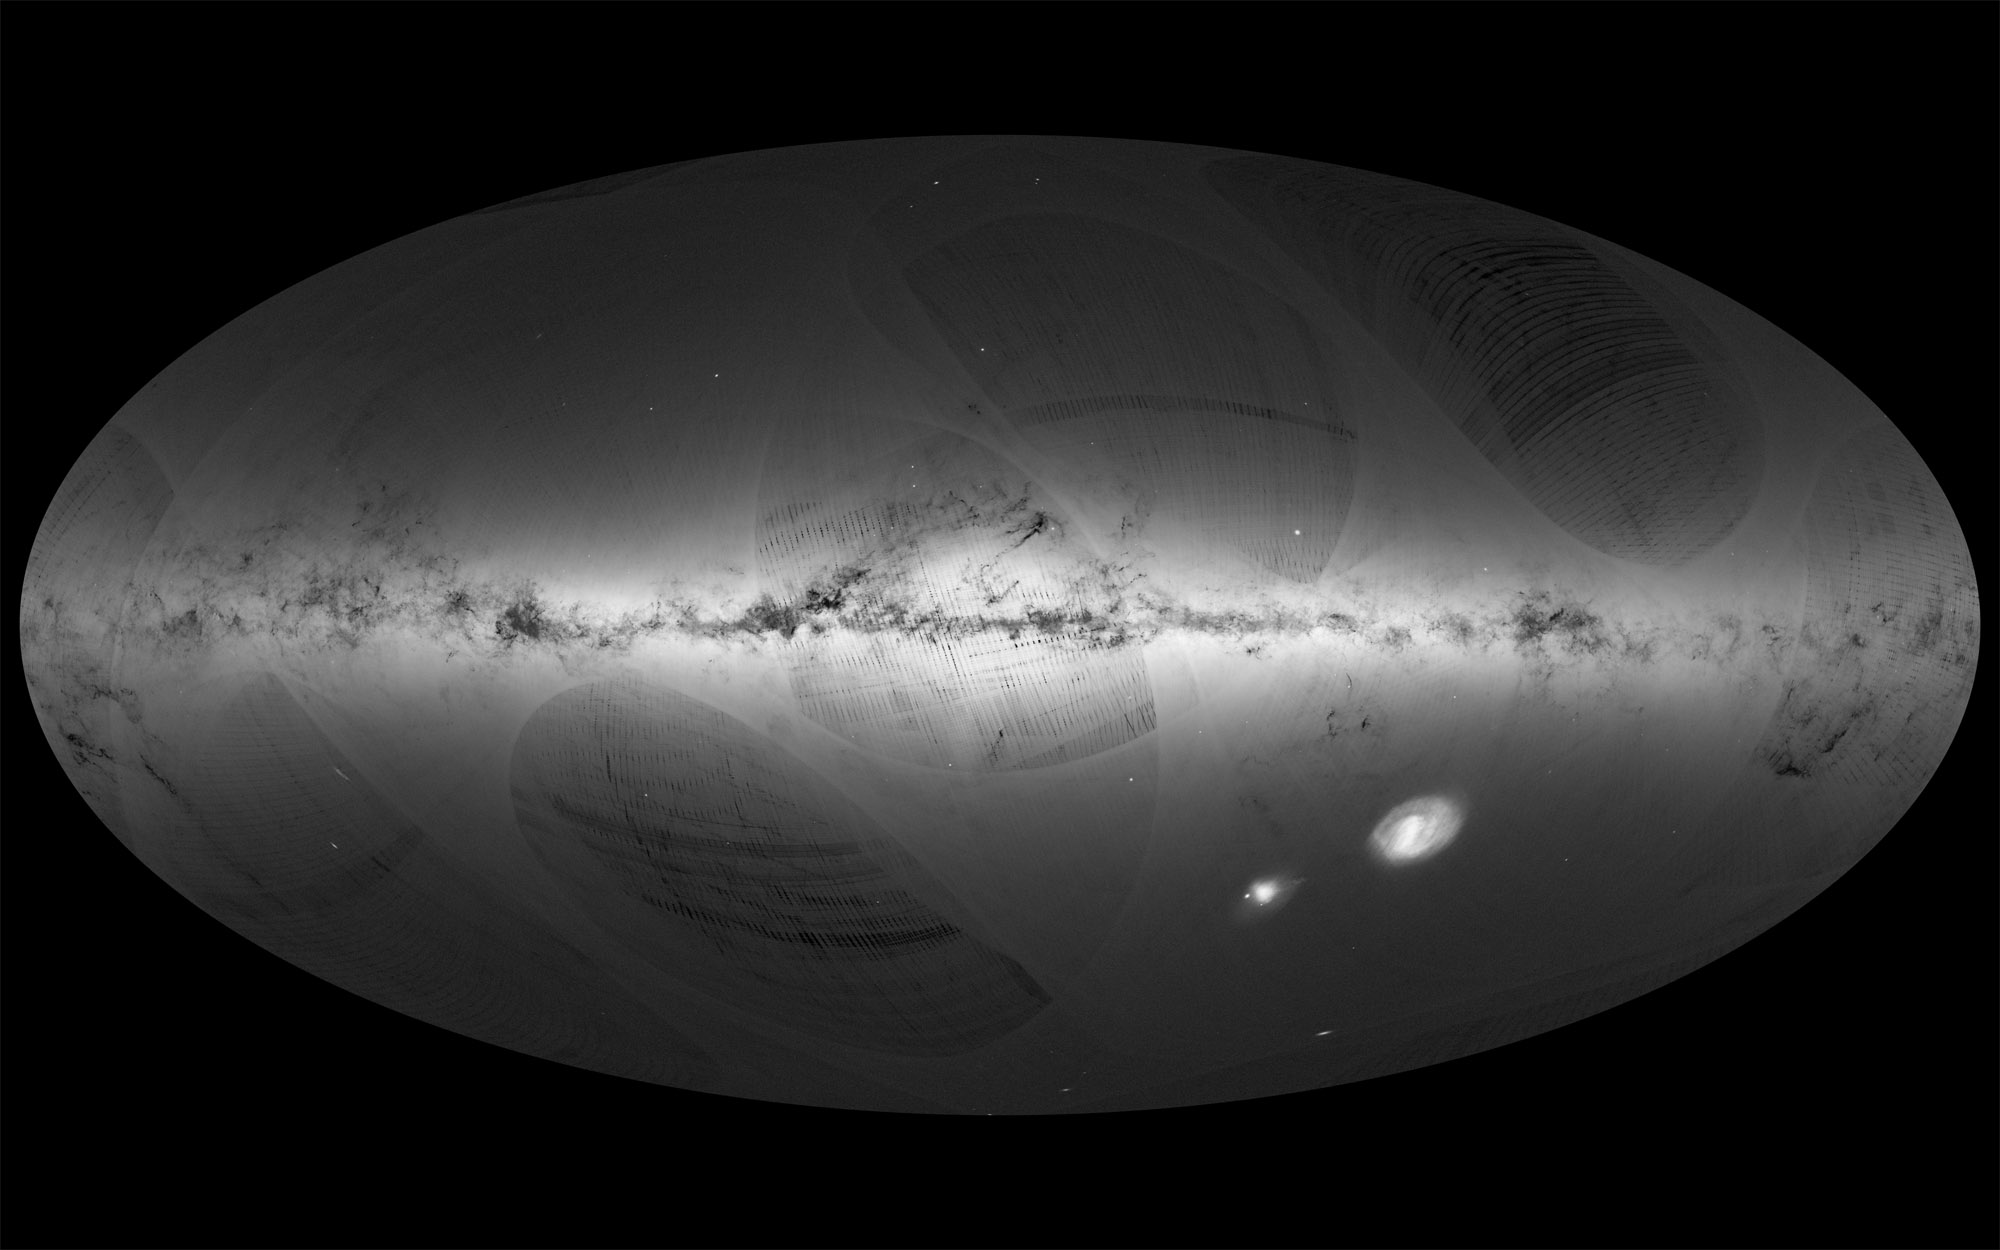 This all-sky view of the stars in our Milky Way galaxy, as well as neighboring galaxies, take center stage in this sky map by the European Space Agency's Gaia satellite during its first year of operation.